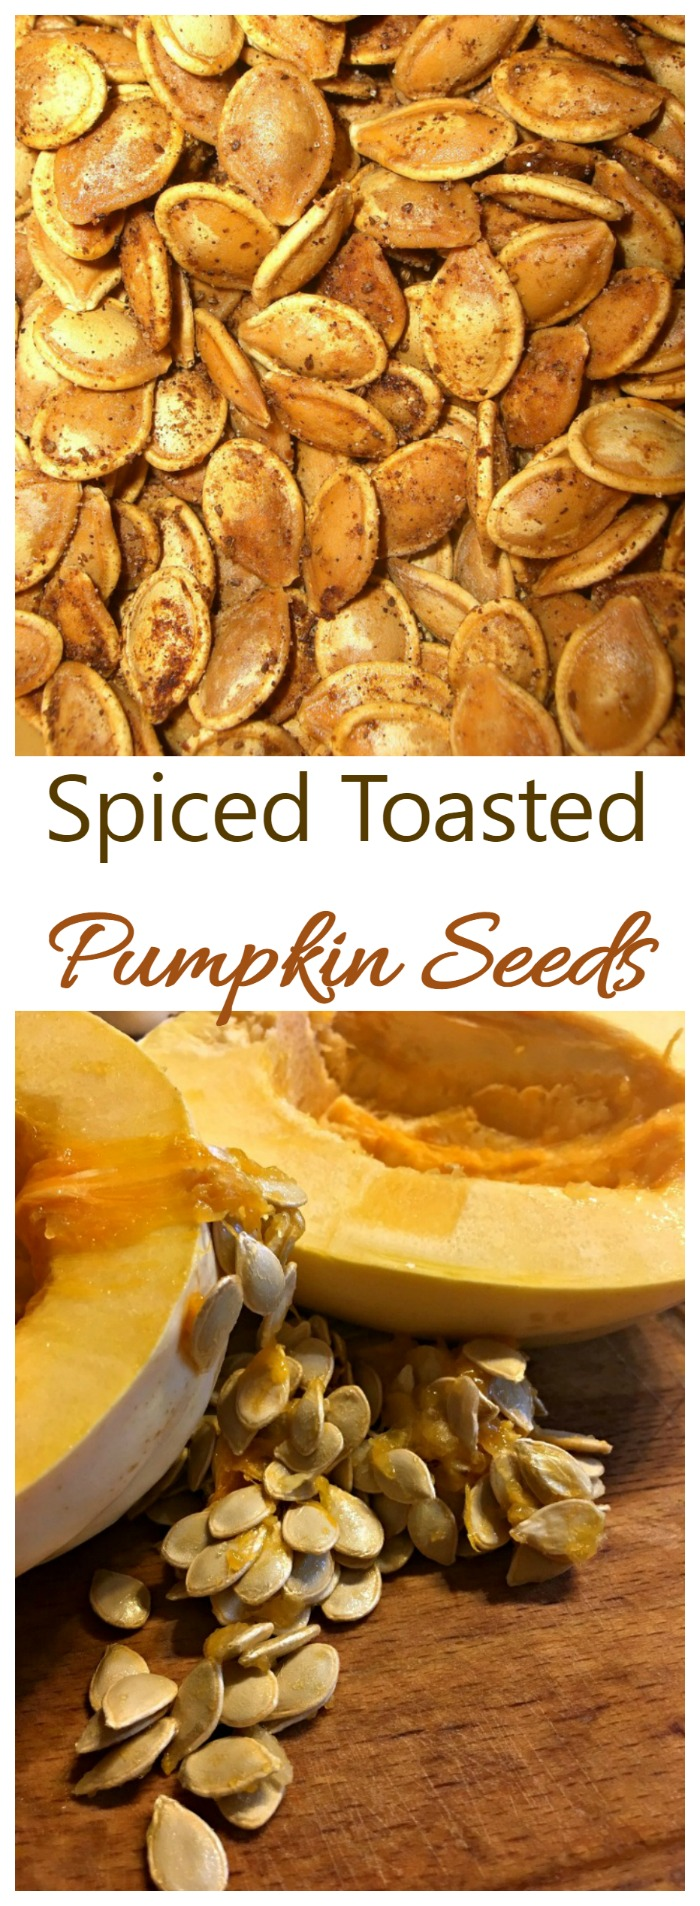 These spiced toasted pumpkin seeds have a sweet and tangy taste and are super easy to make. Pumpkin pie spice gives them a feel good nostalgic flavor.